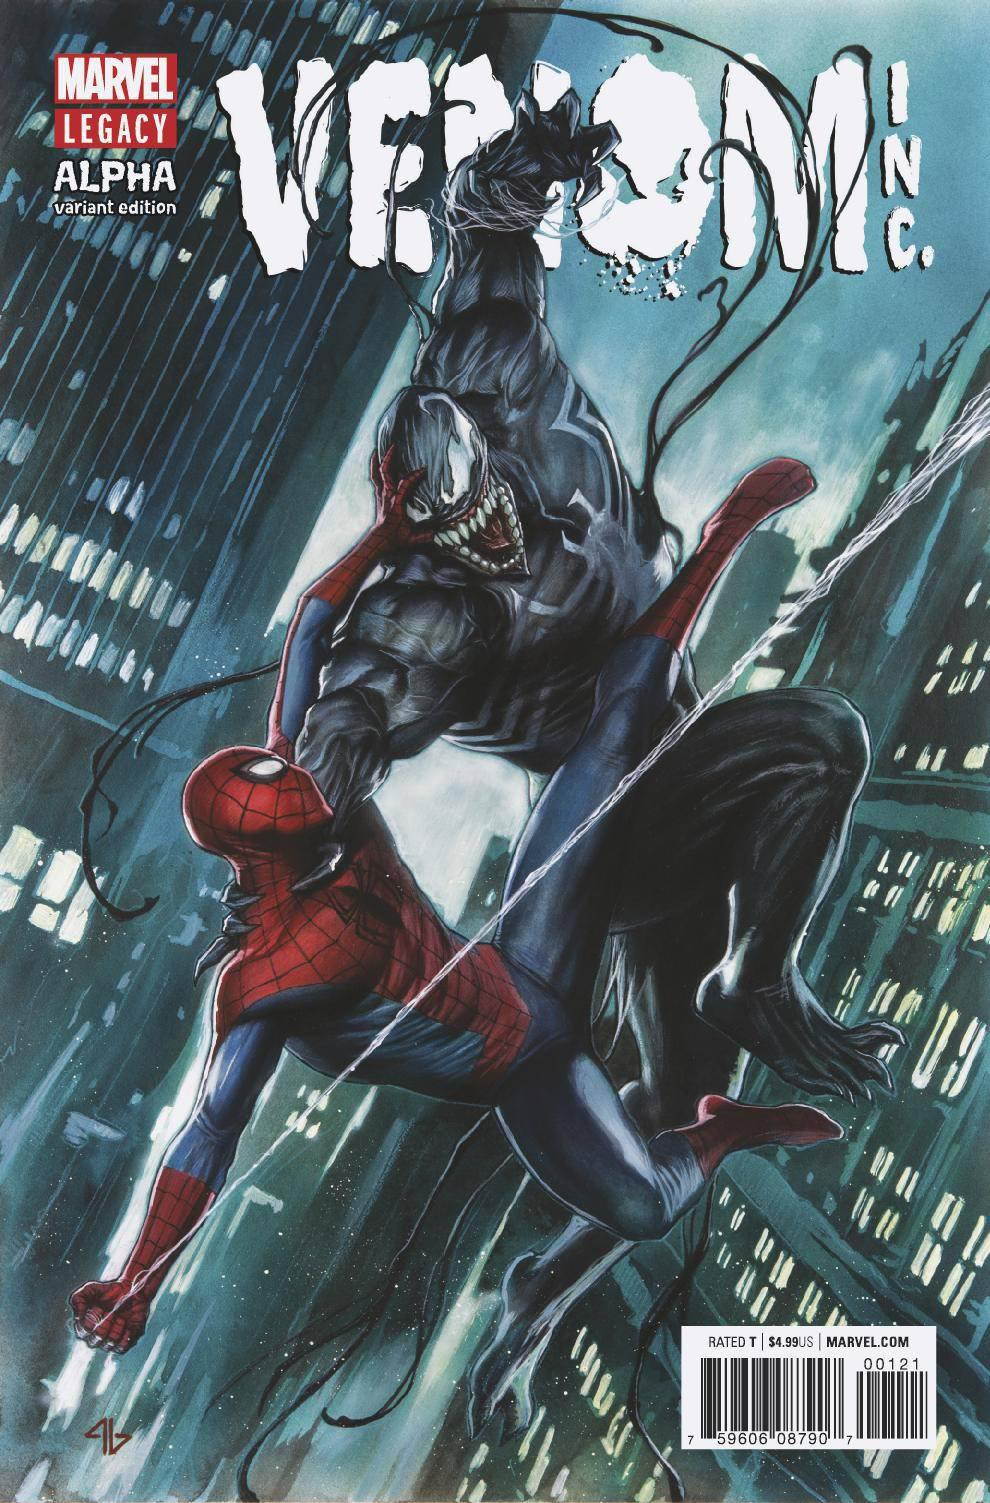 Geek insider, geekinsider, geekinsider. Com,, dishing venom: a look at a spidey-foe, comics, tv and movies